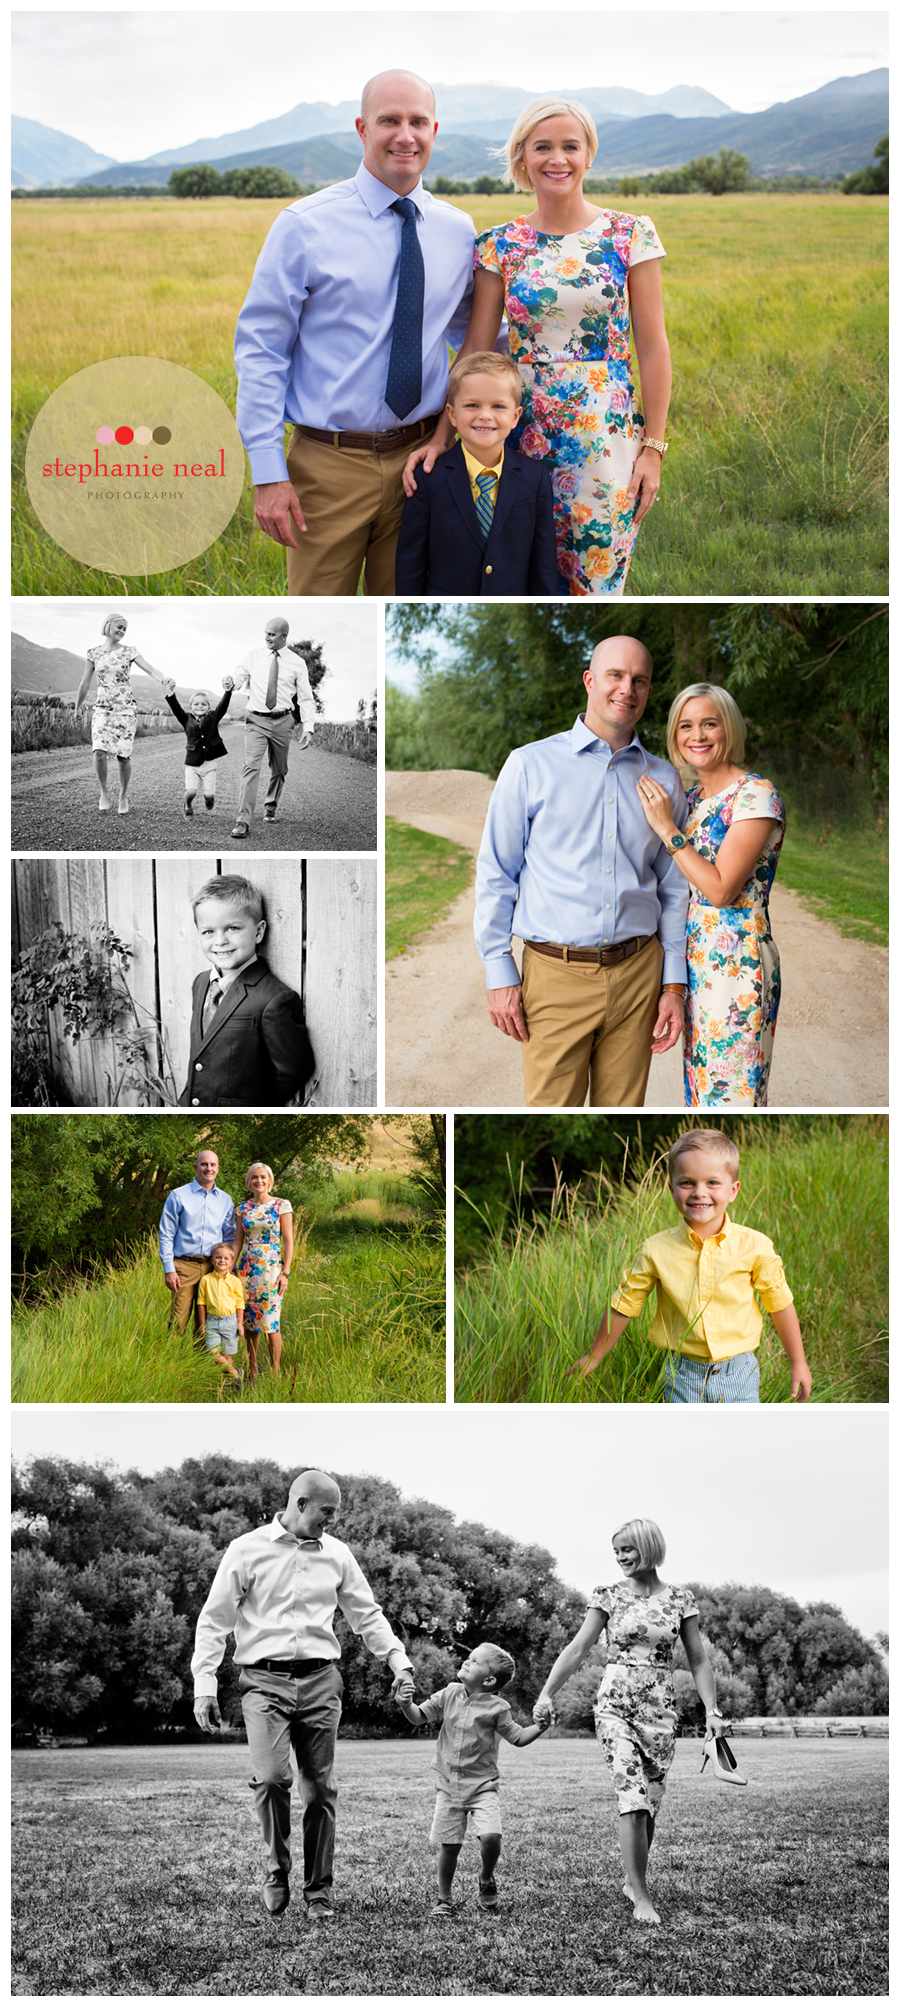 Stephanie Neal Photography Park City Midway Utah Family Photographer